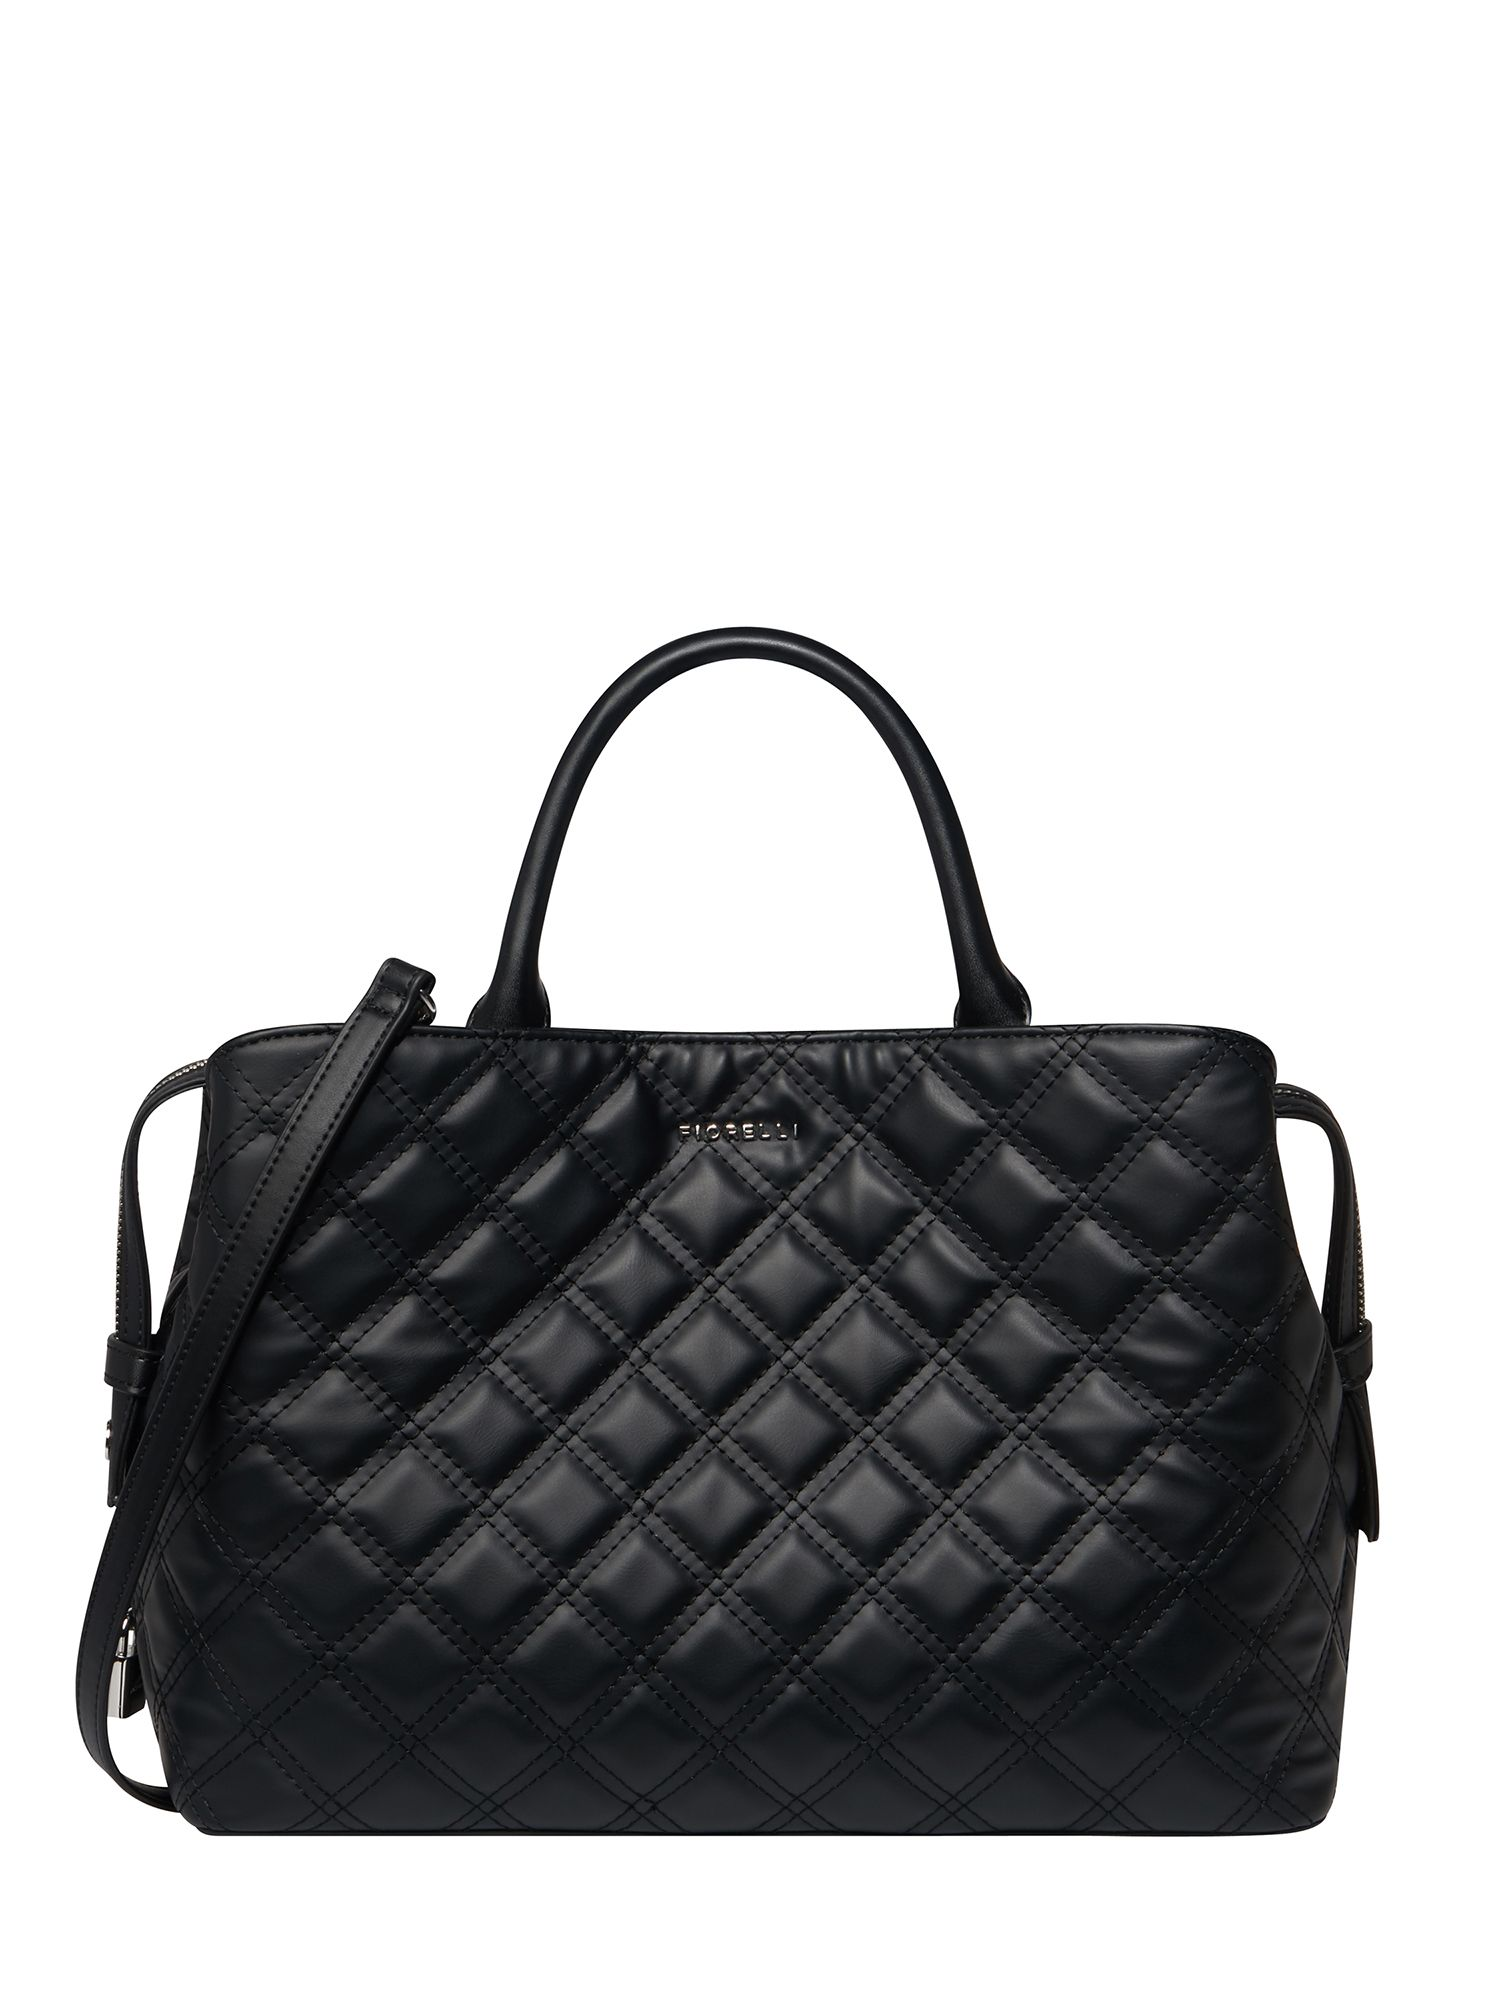 Fiorelli Bethnal triple compartment tote bag, Black Quilted